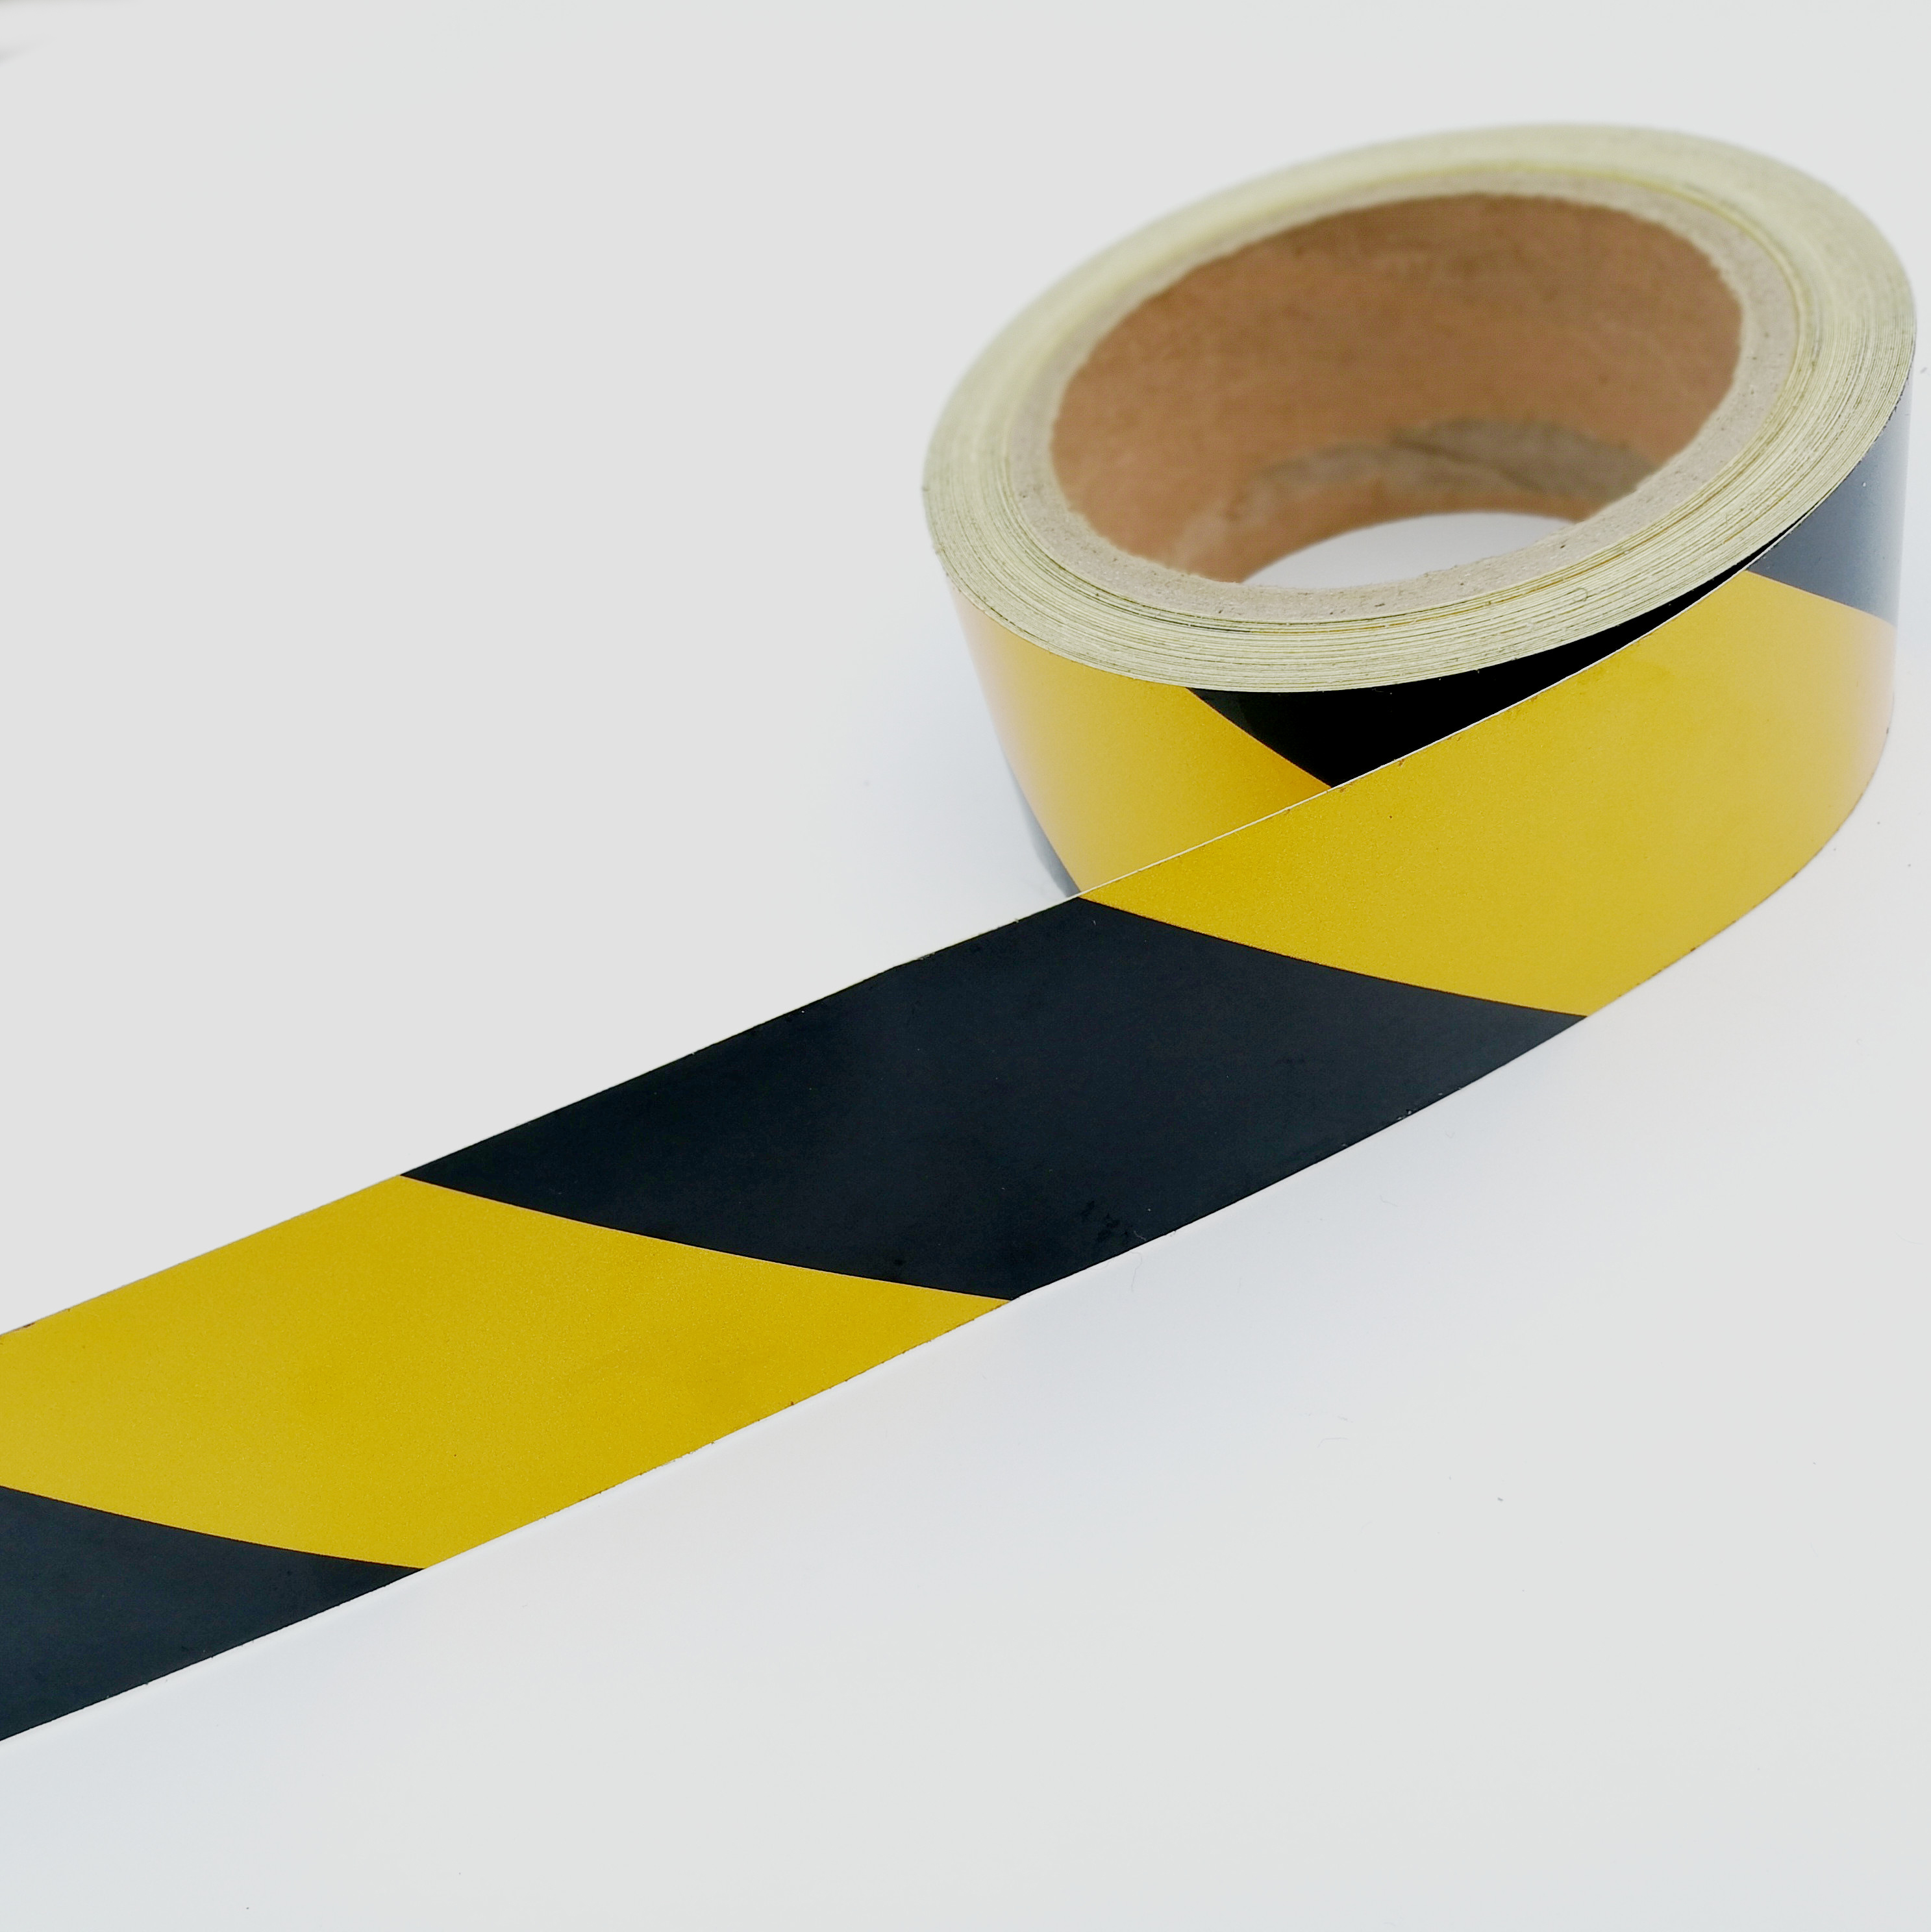 Trustful 5cm*45m Gold Yellow Adhesive Reflective Warning Tape For Road Traffic Construction Site Roadway Safety